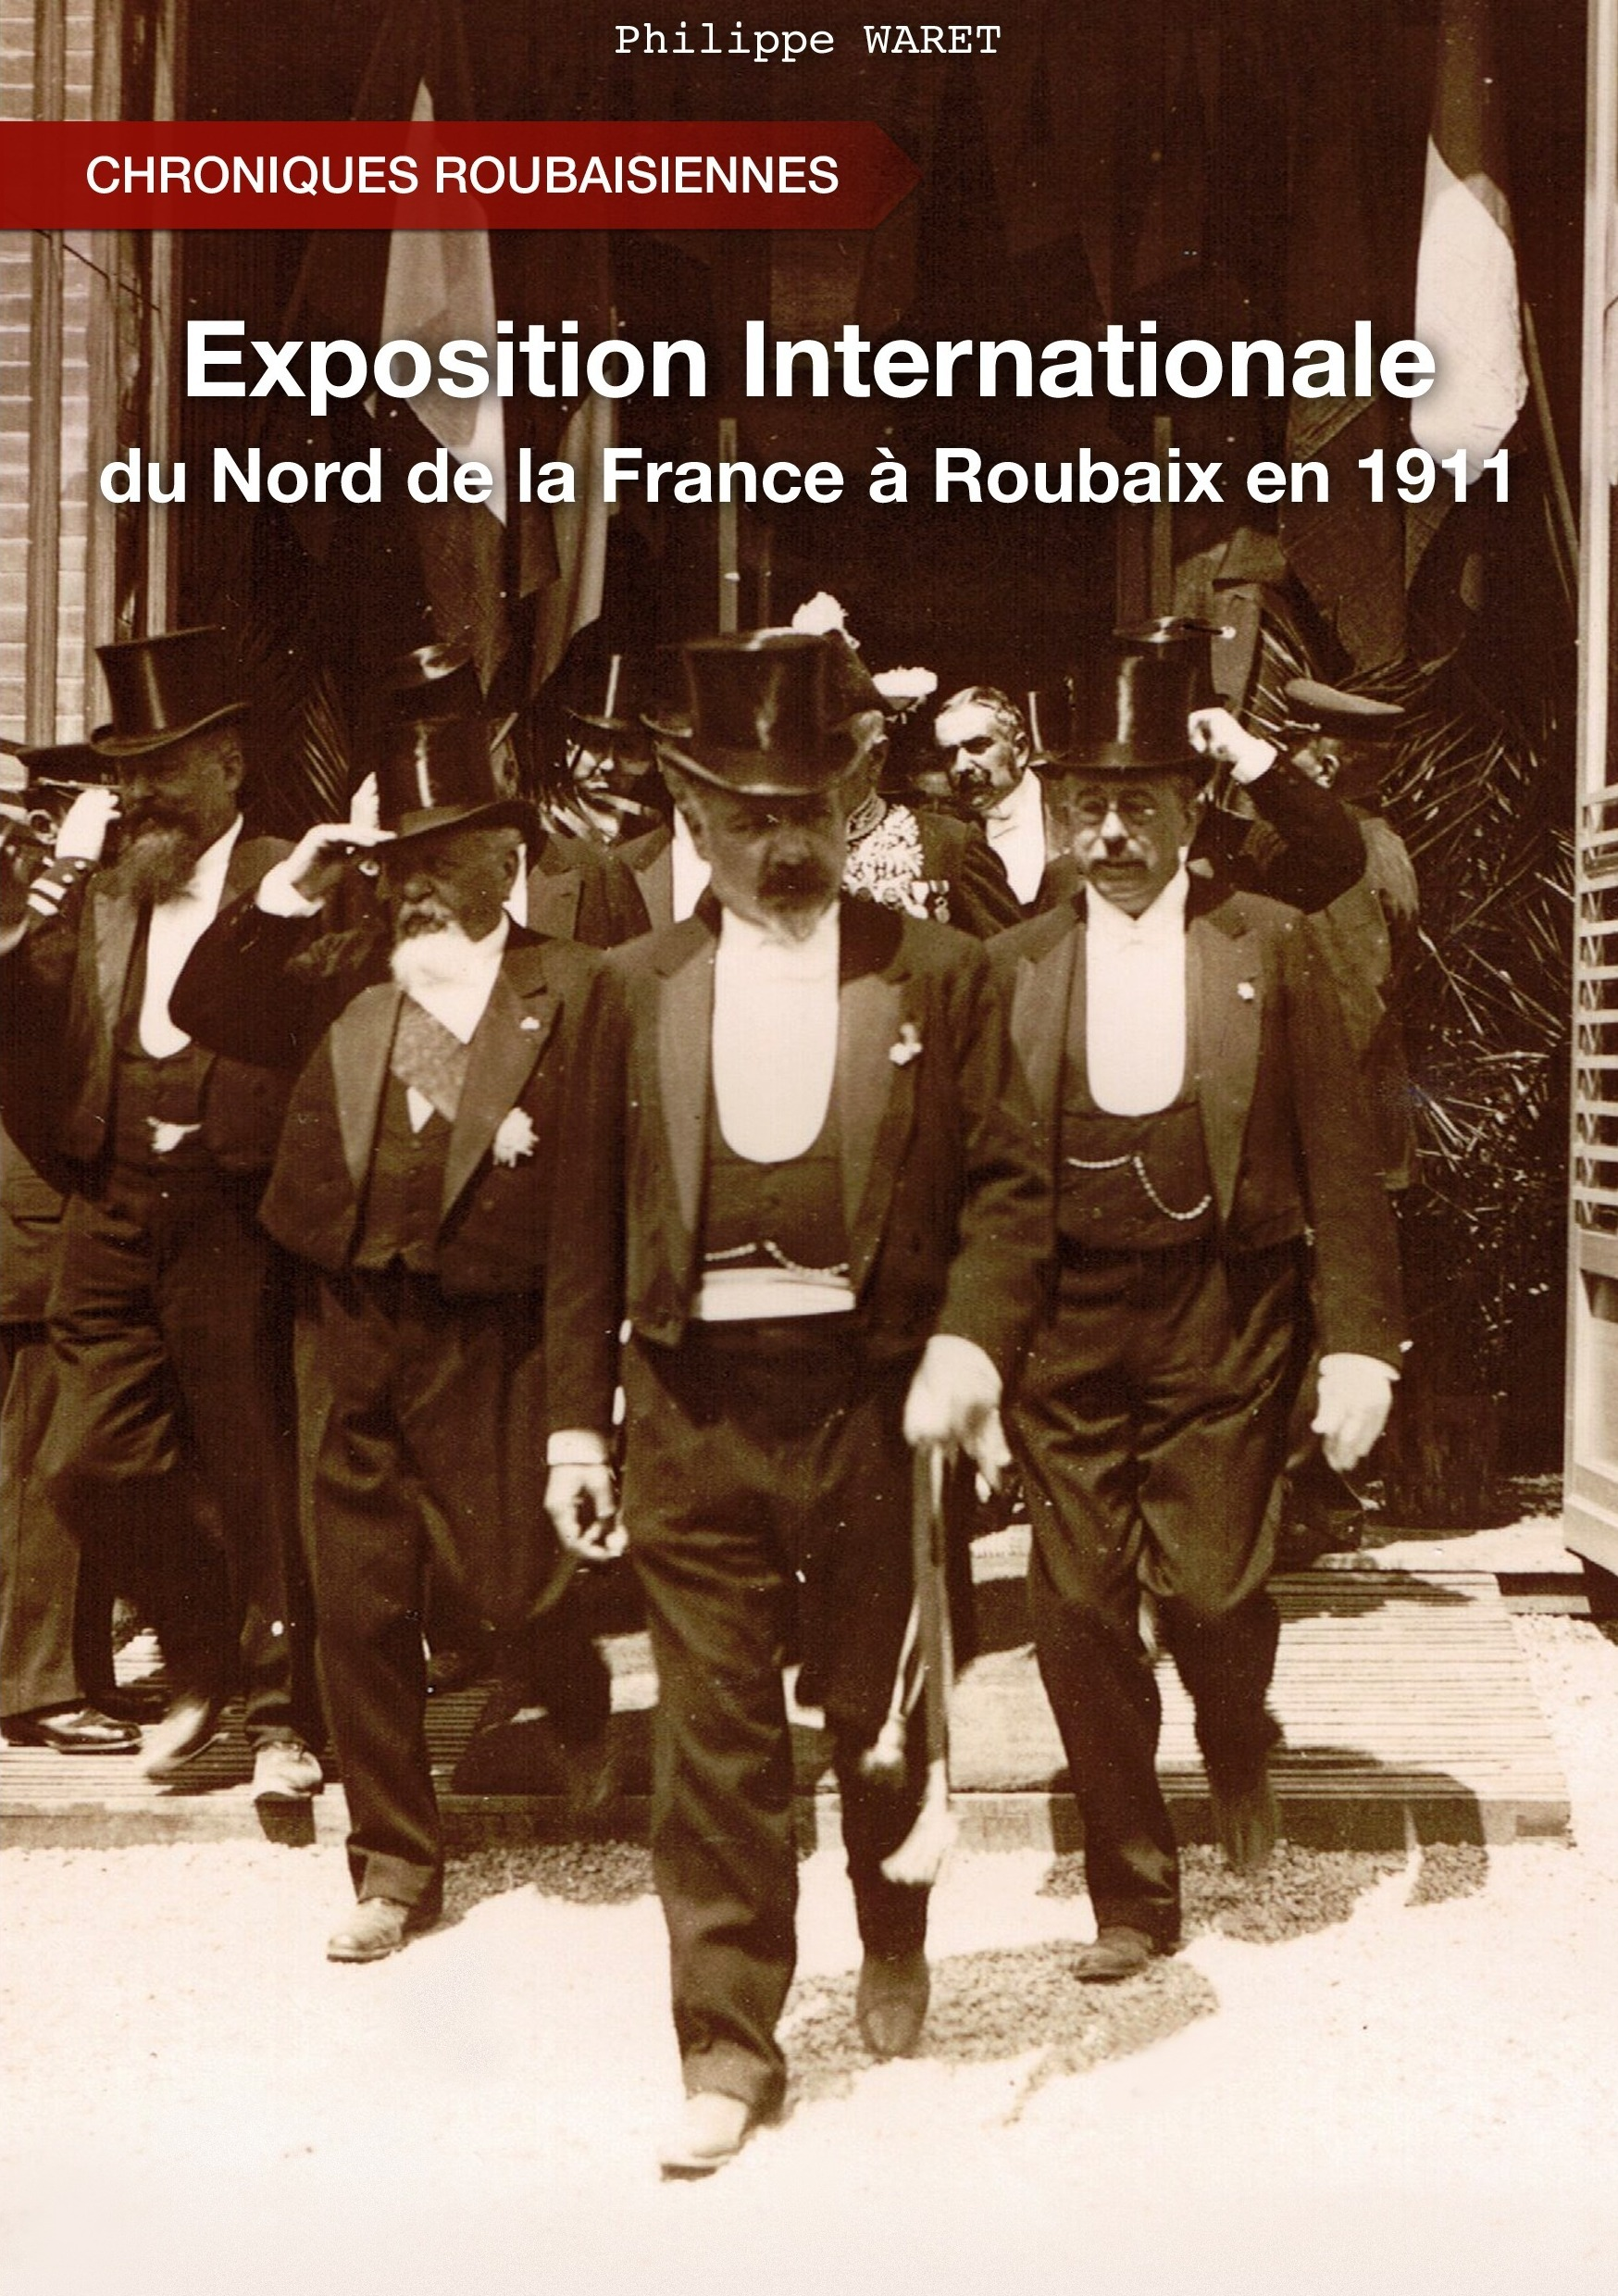 L'EXPOSITION INTERNATIONALE DU NORD DE LA FRANCE ROUBAIX 1911